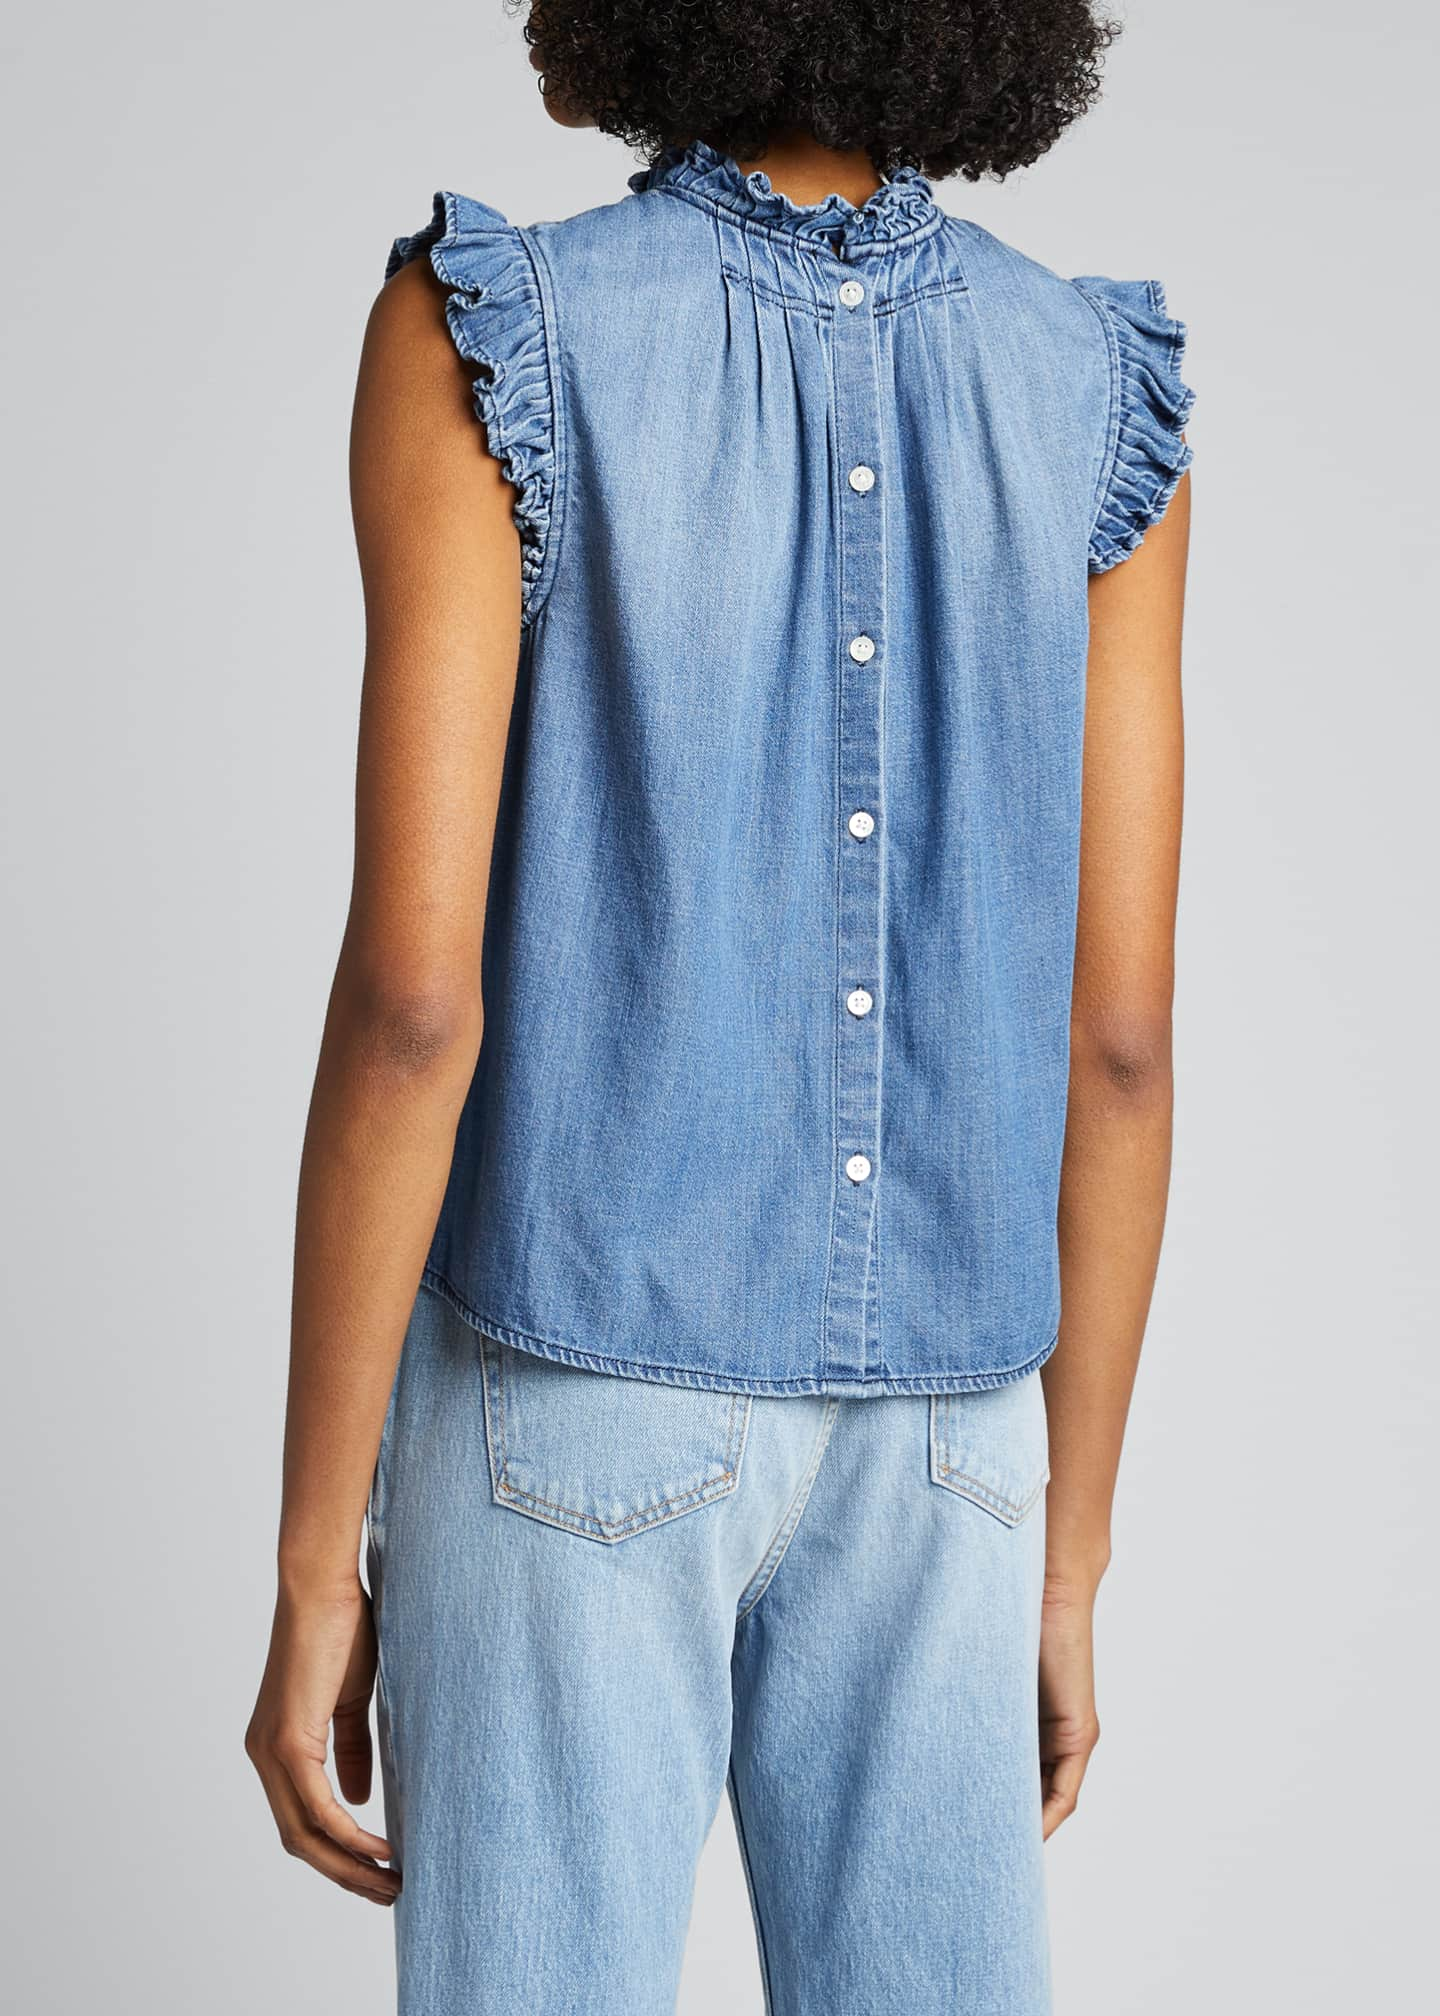 Image 2 of 5: Ruffle Denim Sleeveless Top